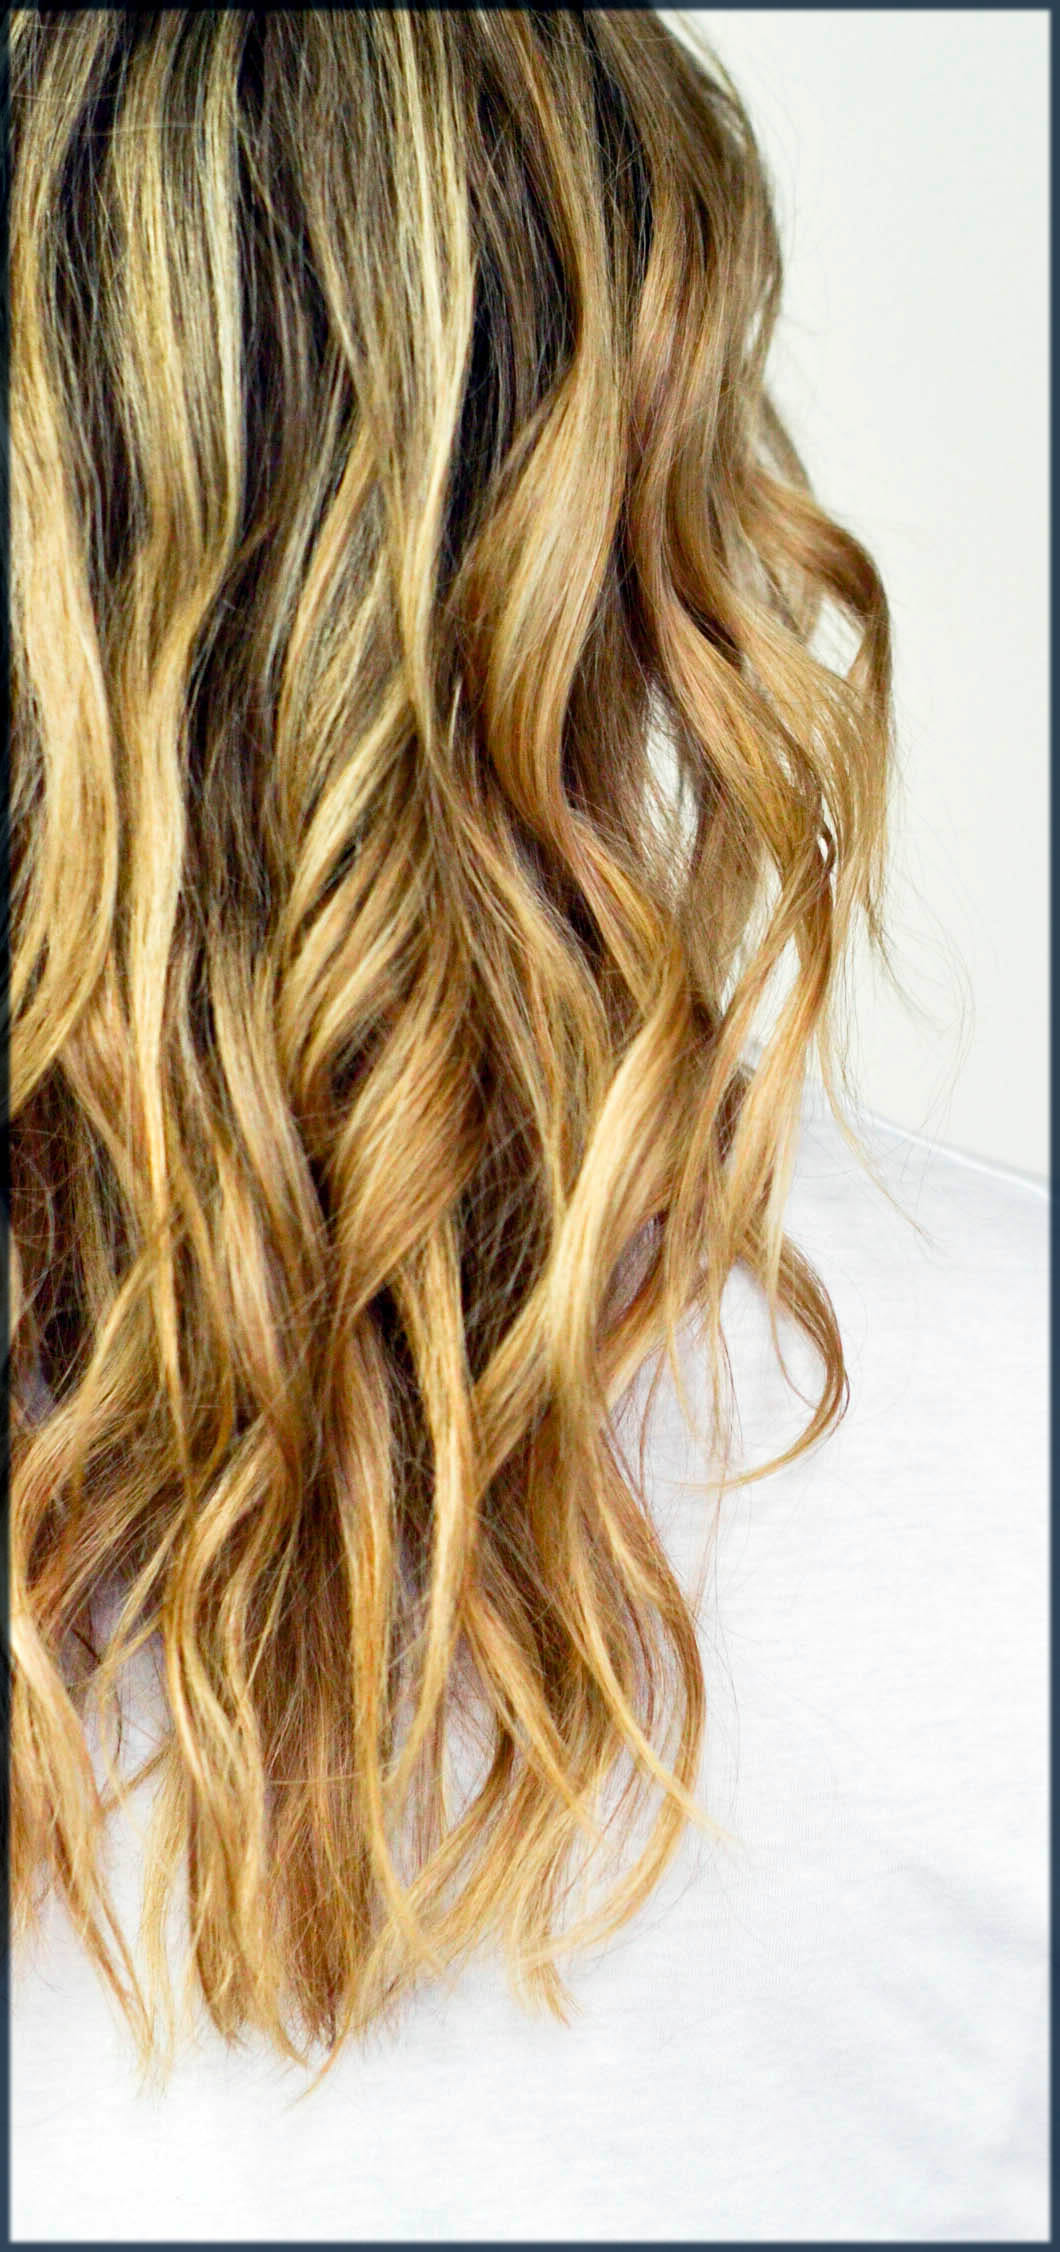 Flat Wrap Hair With a Curling Iron